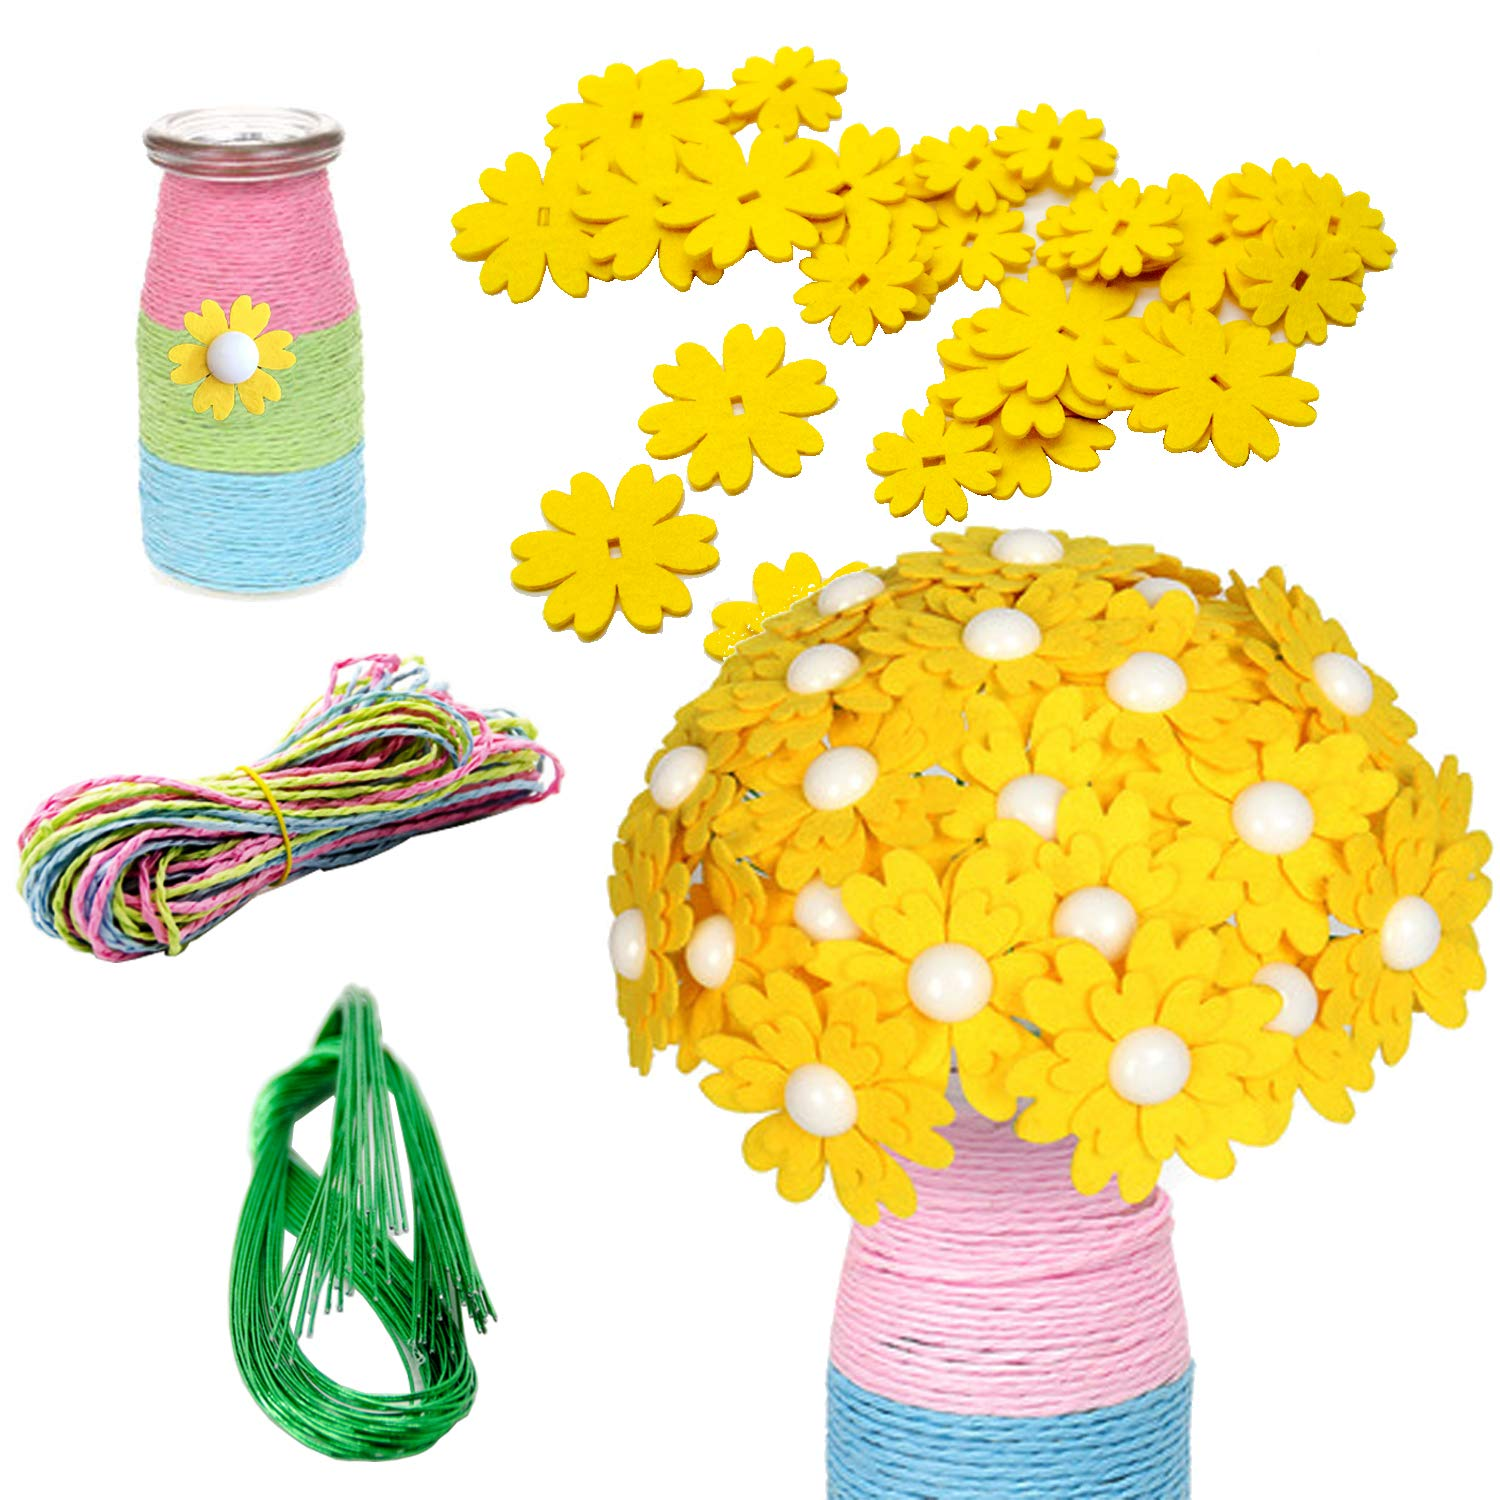 Iceyyyy Flower Crafts Kit DIY Craft Iron Wire Button Felt Bouquets Kit for Kids